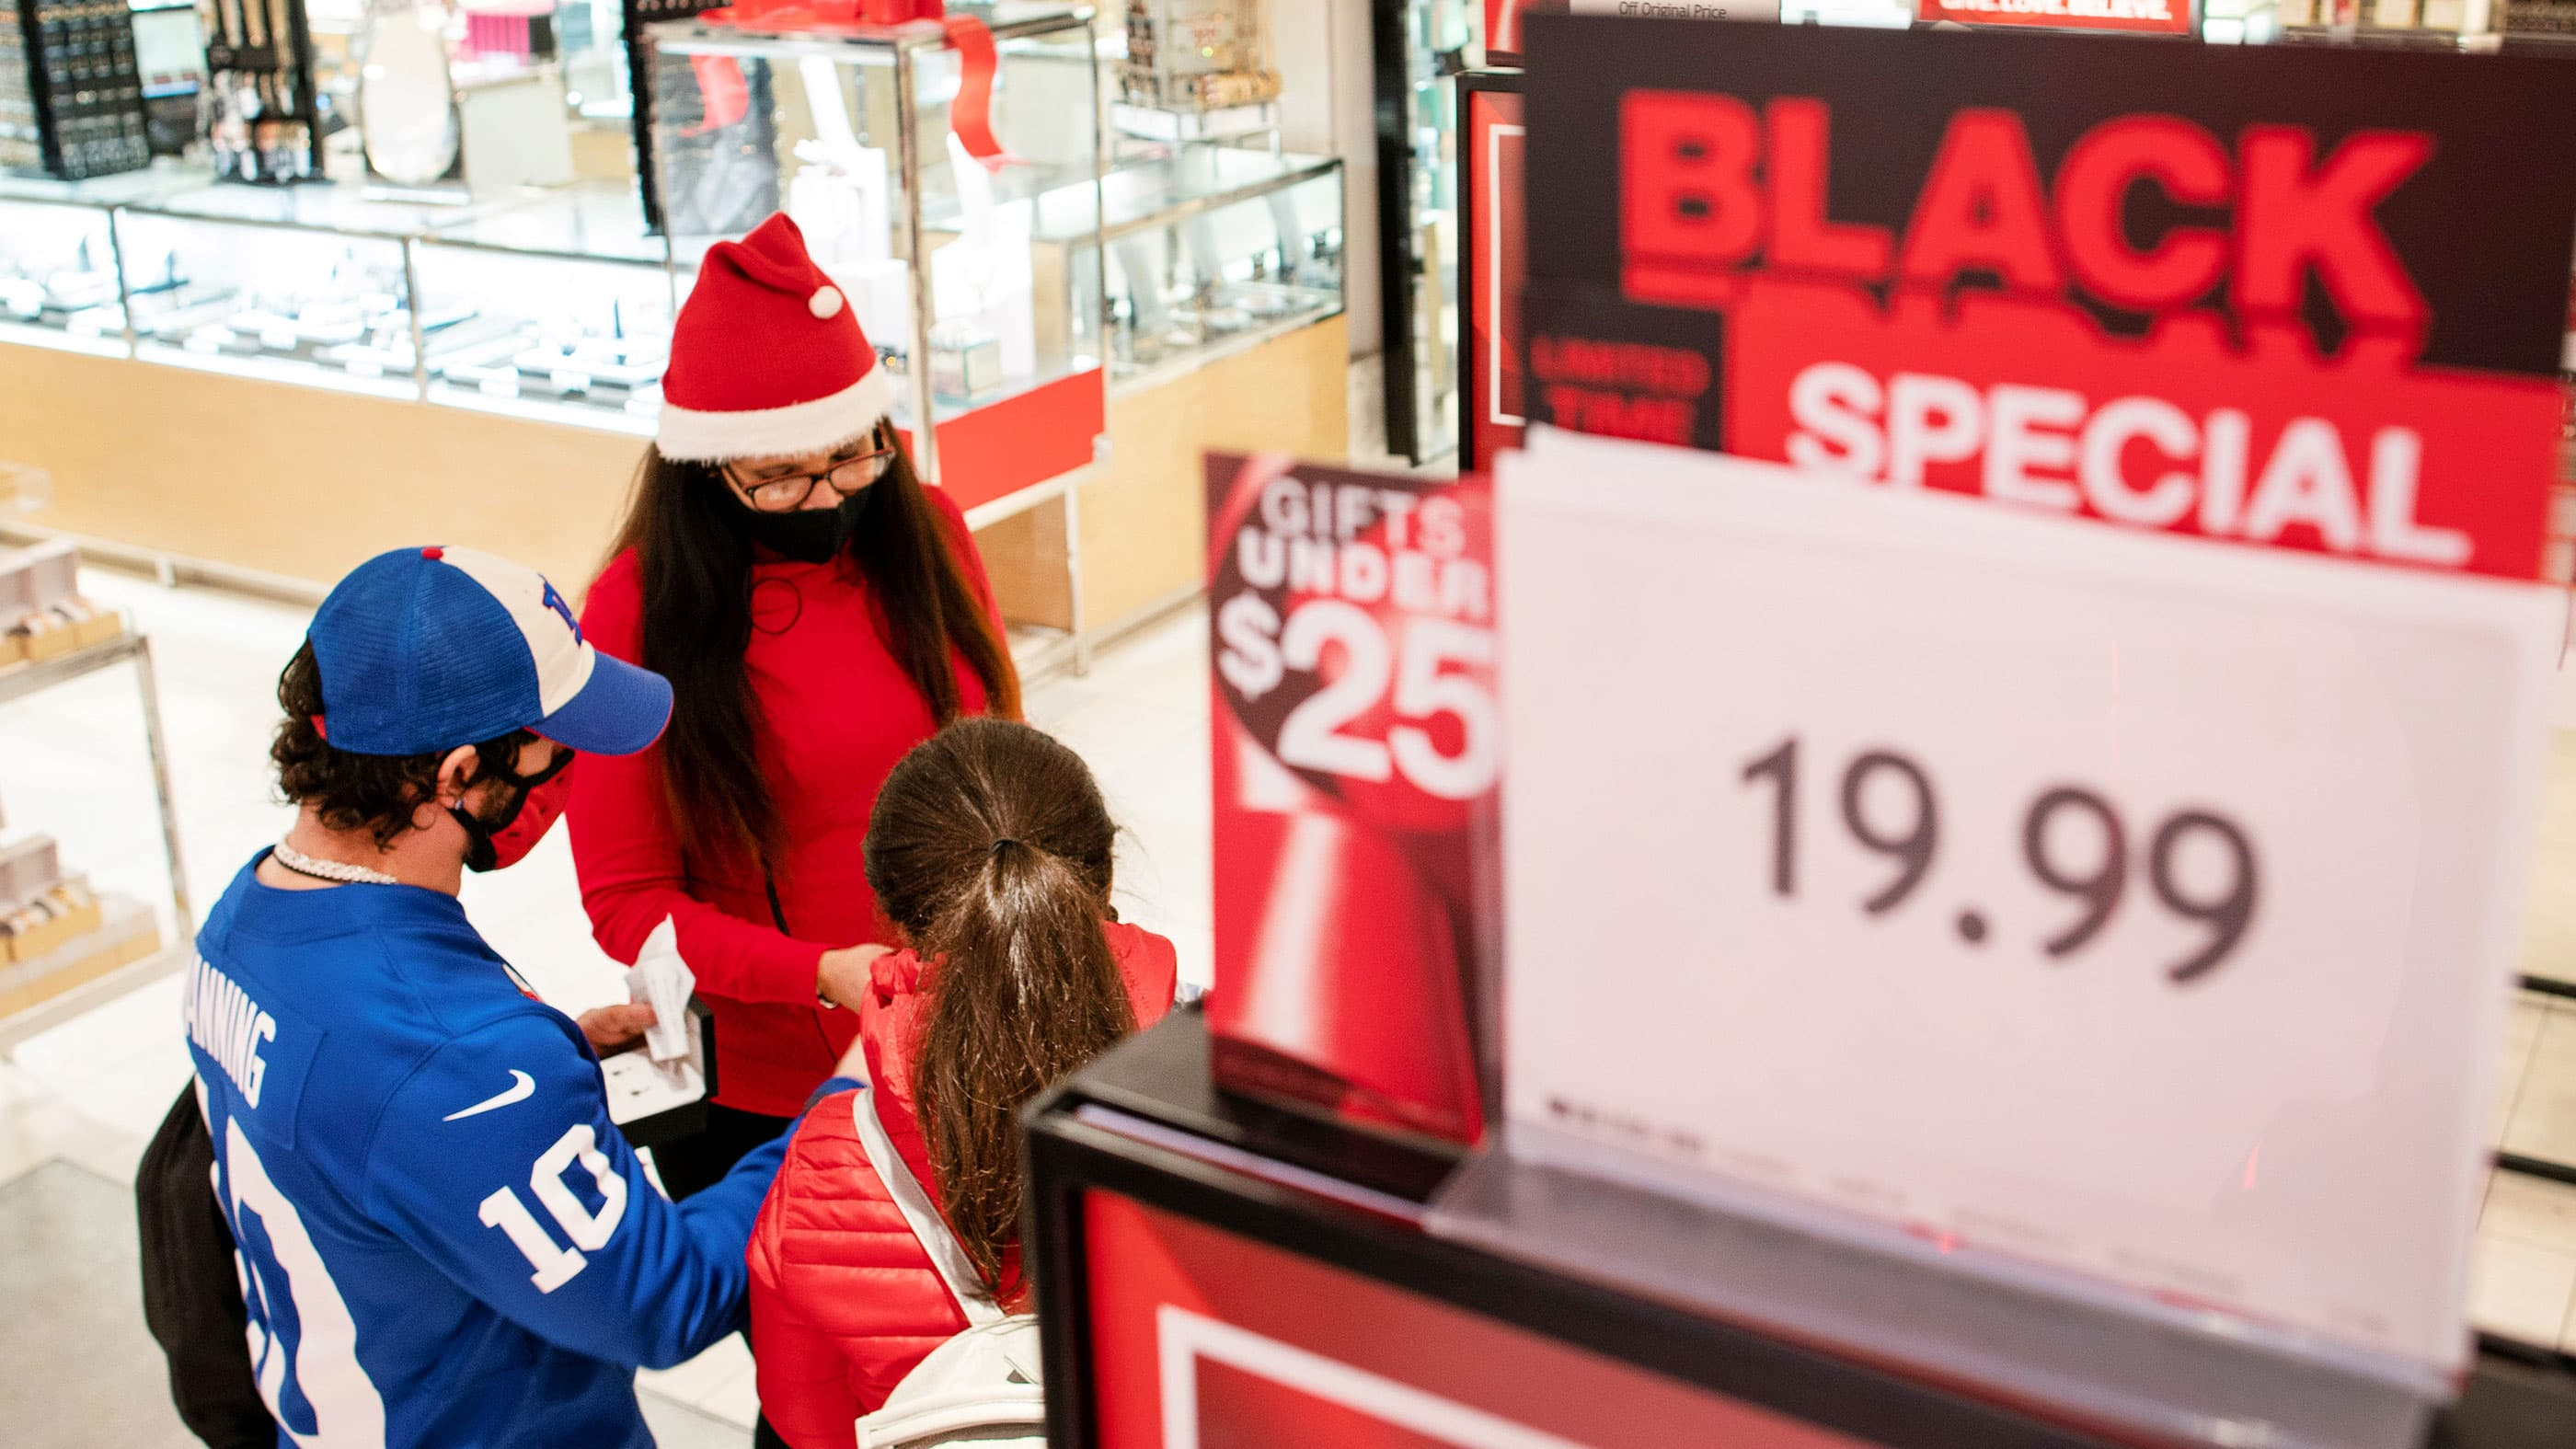 Black Friday online shopping on track to hit record as holiday shoppers skip stores, Adobe says